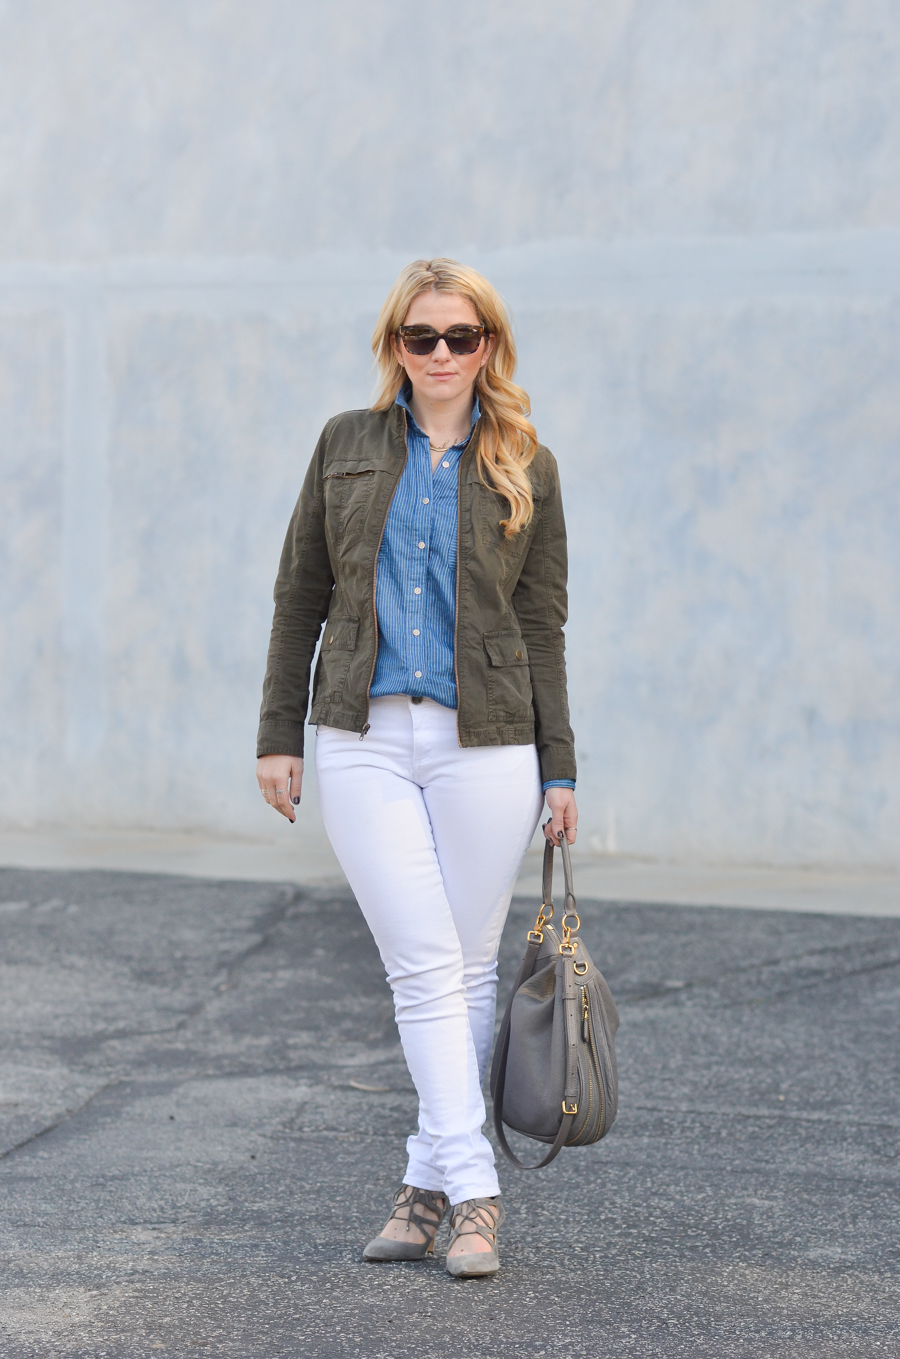 California Tailored Blue Shirt | White Jeans in Winter